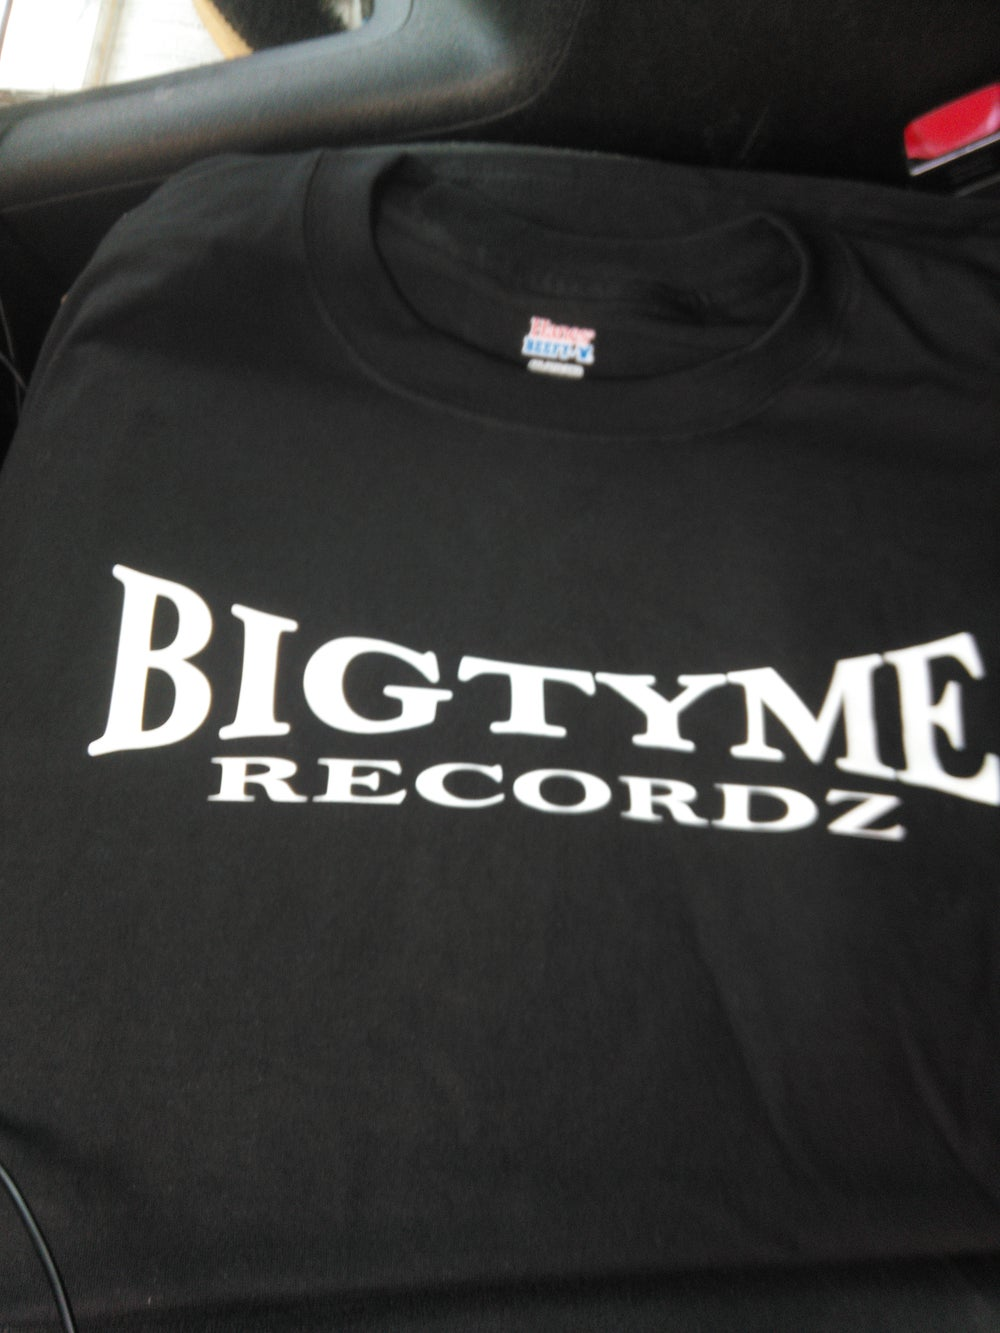 Image of Bigtyme T shirt 2